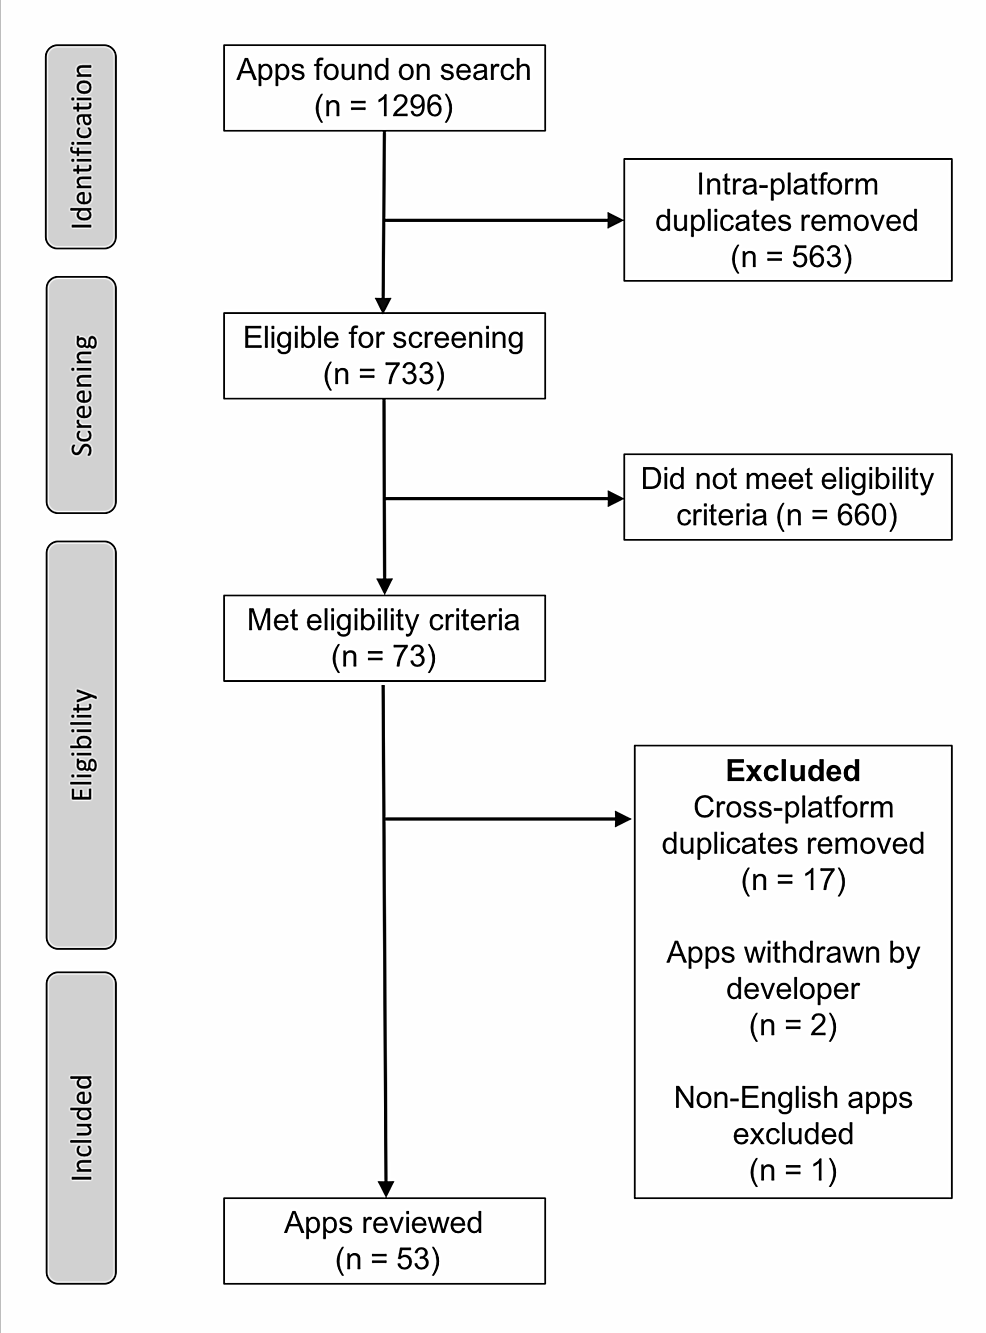 Flow-chart-of-included-mobile-apps-in-systematic-review-of-mobile-app-market